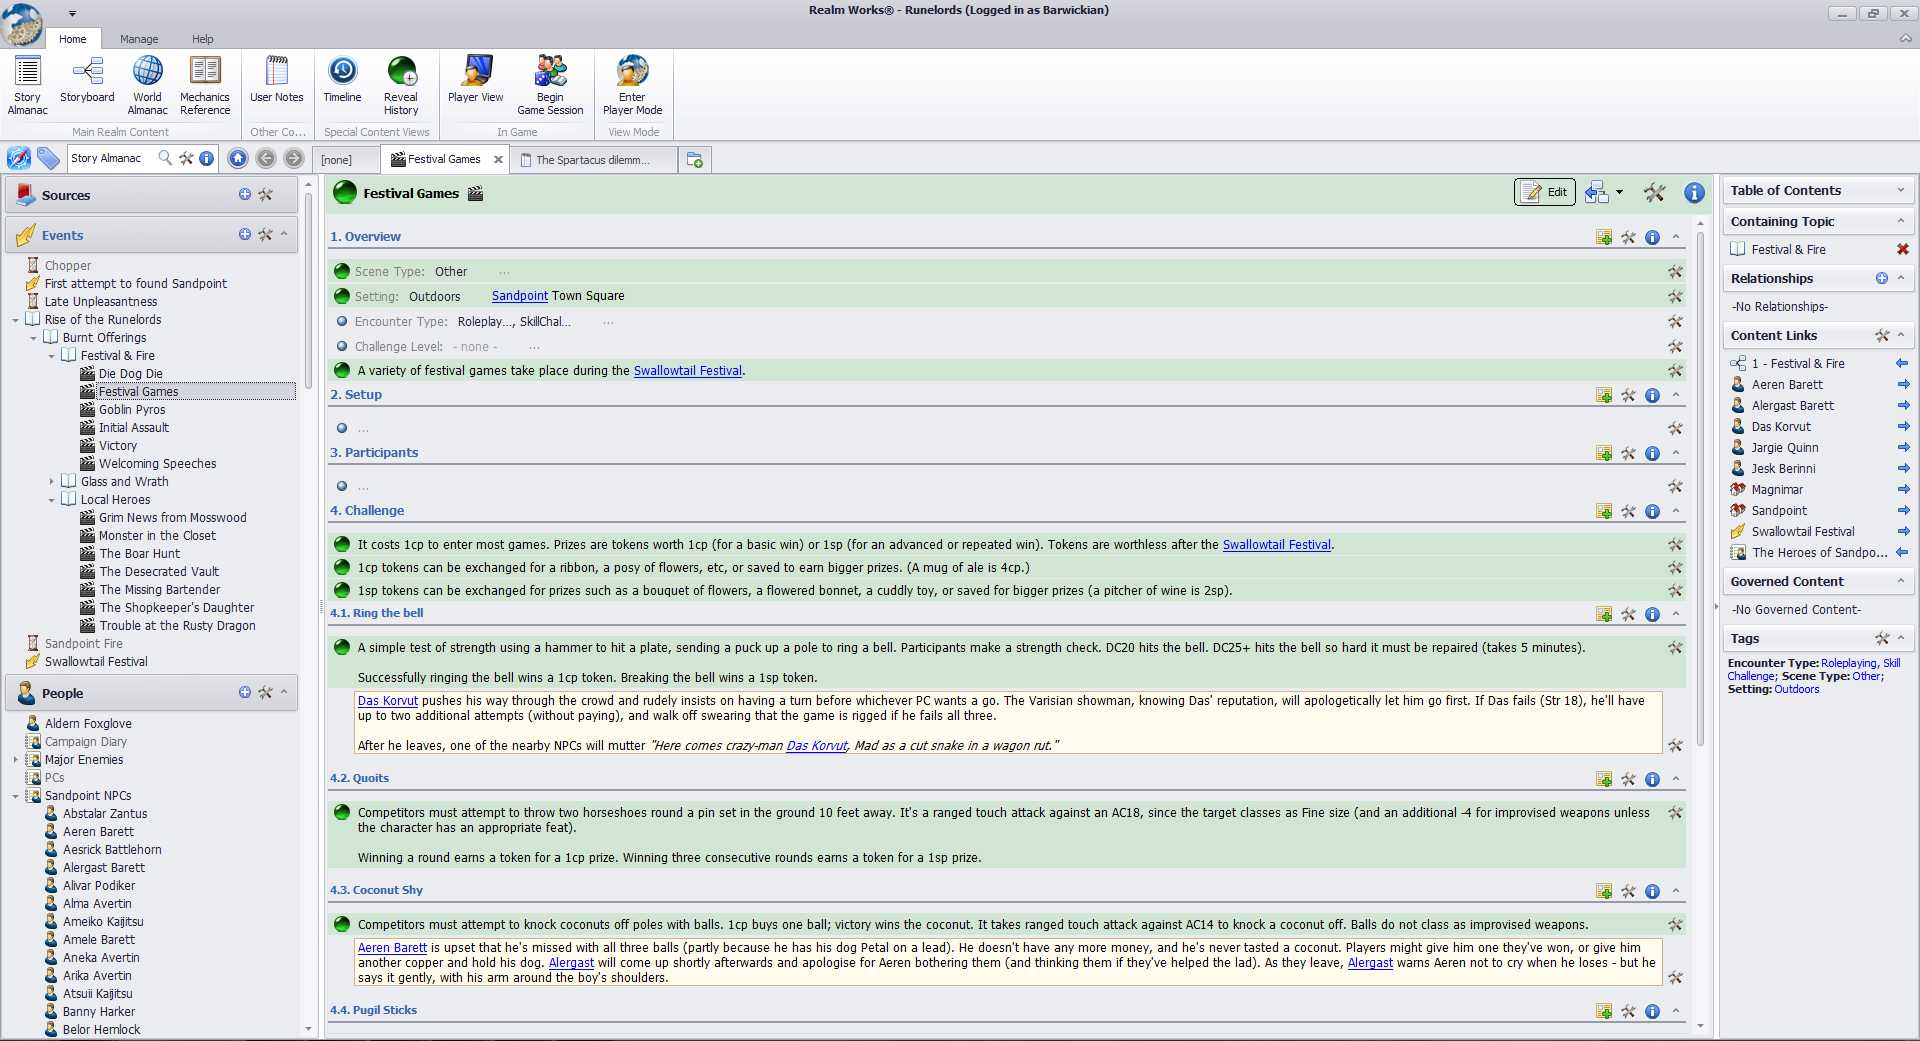 The GM's view of Realm Works. Paragraphs highlighted in green have been released to the players. The notes in pale yellow are GM notes which players won't see at all.